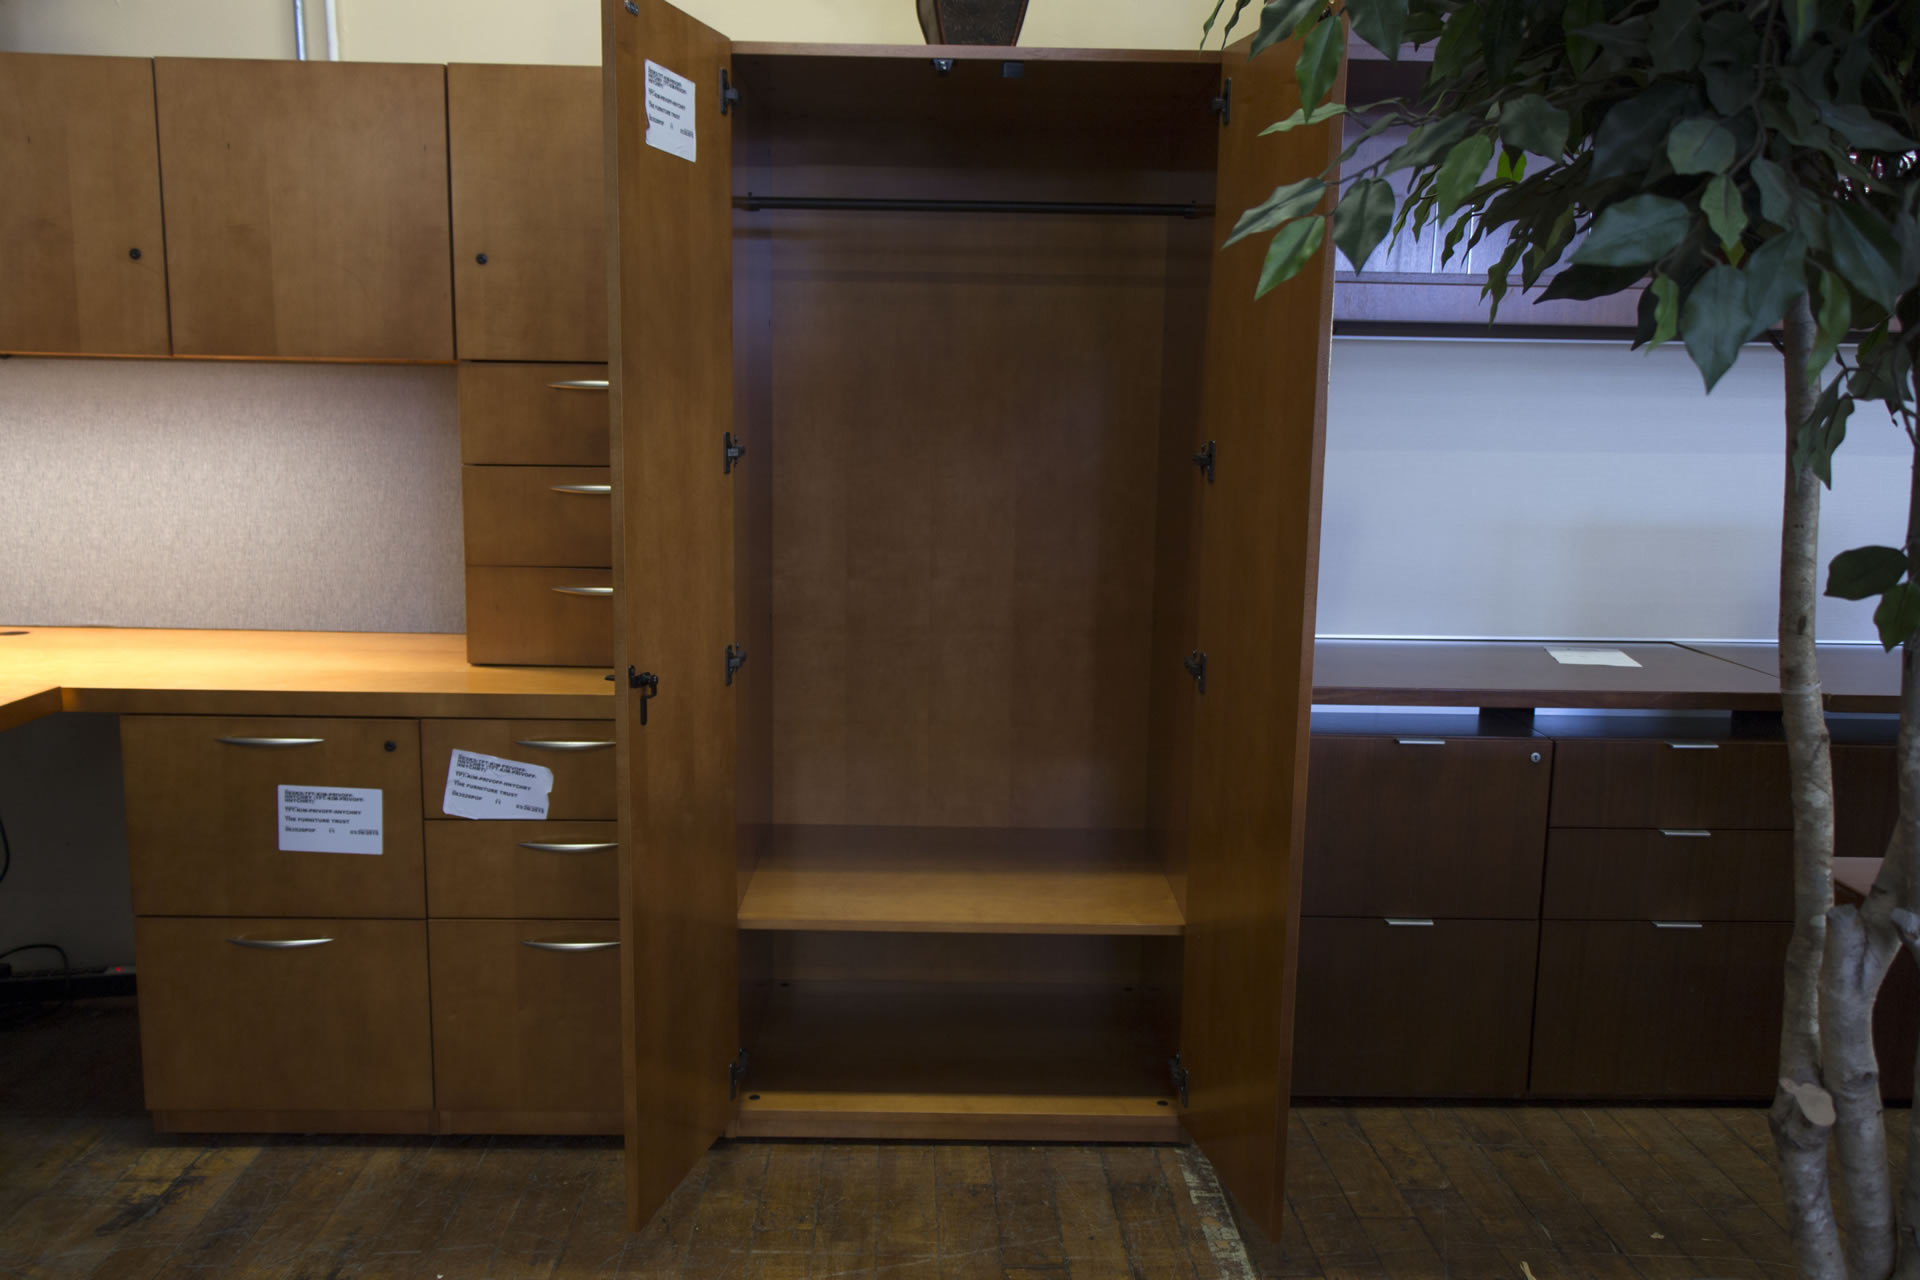 peartreeofficefurniture_peartreeofficefurniture_mg_5501.jpg